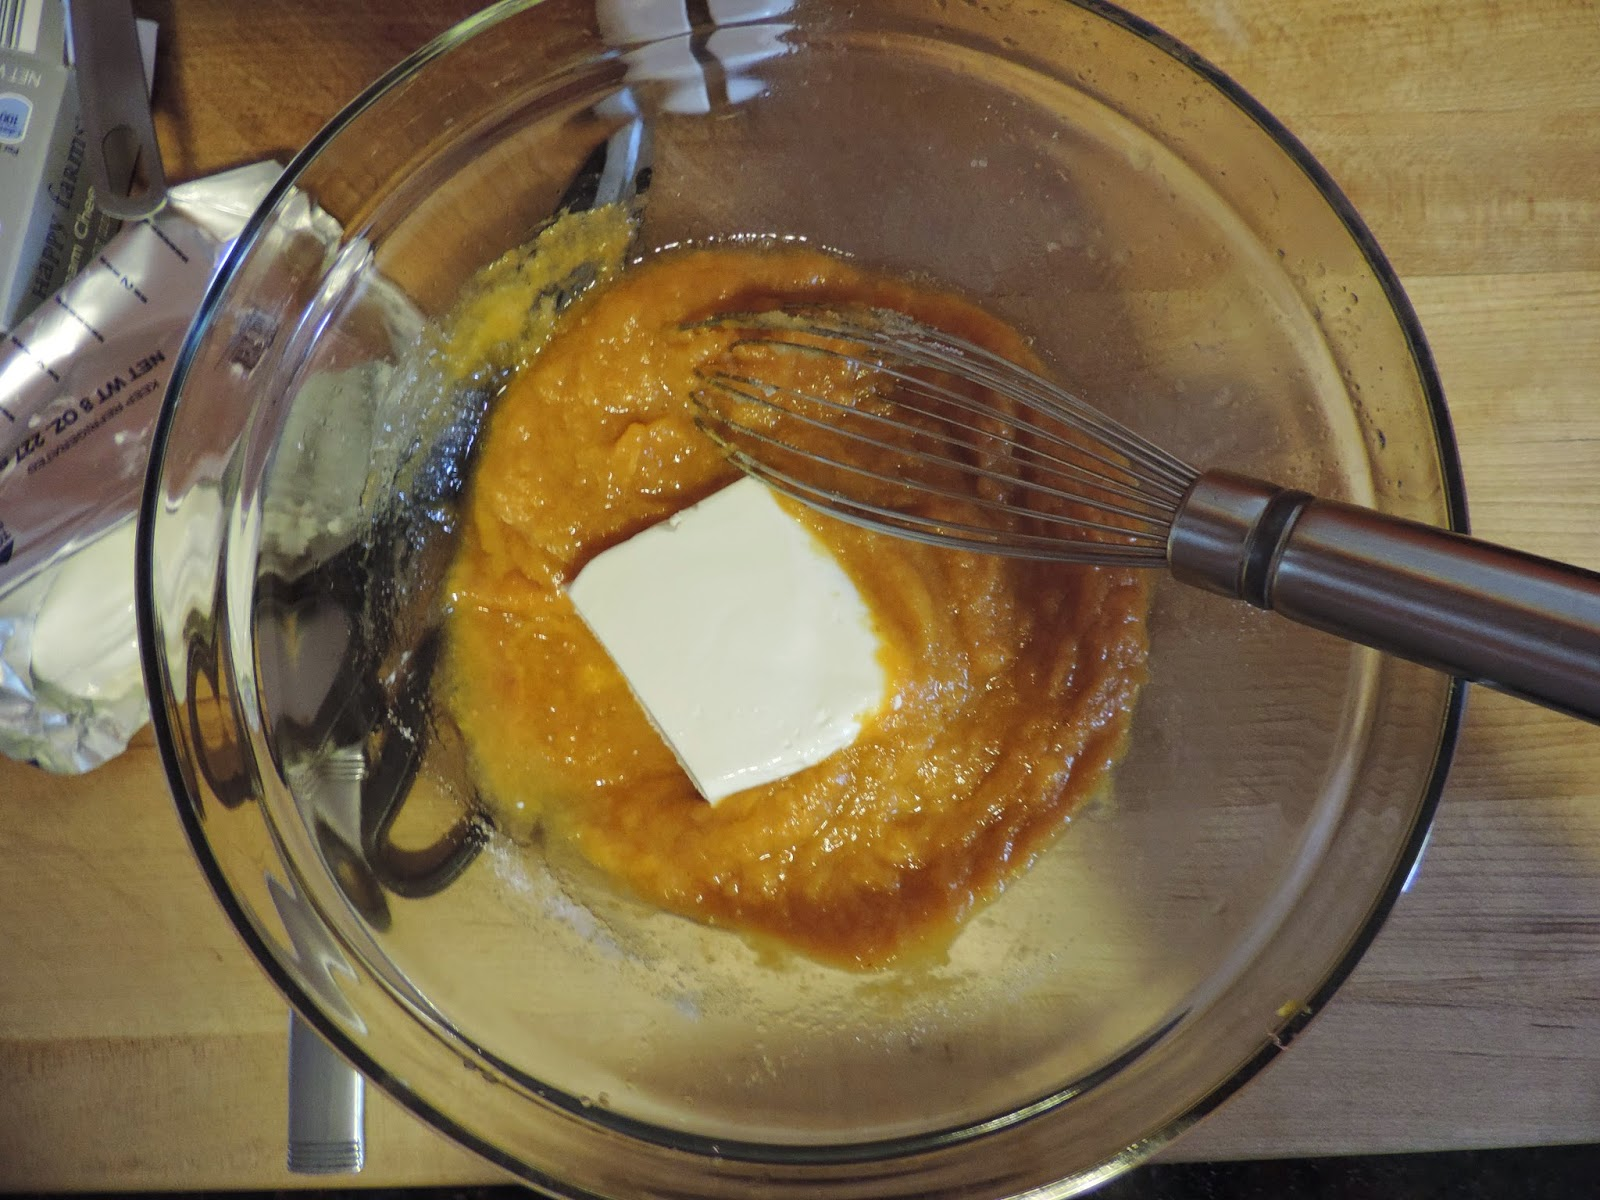 how to get lumps out of cream cheese batter